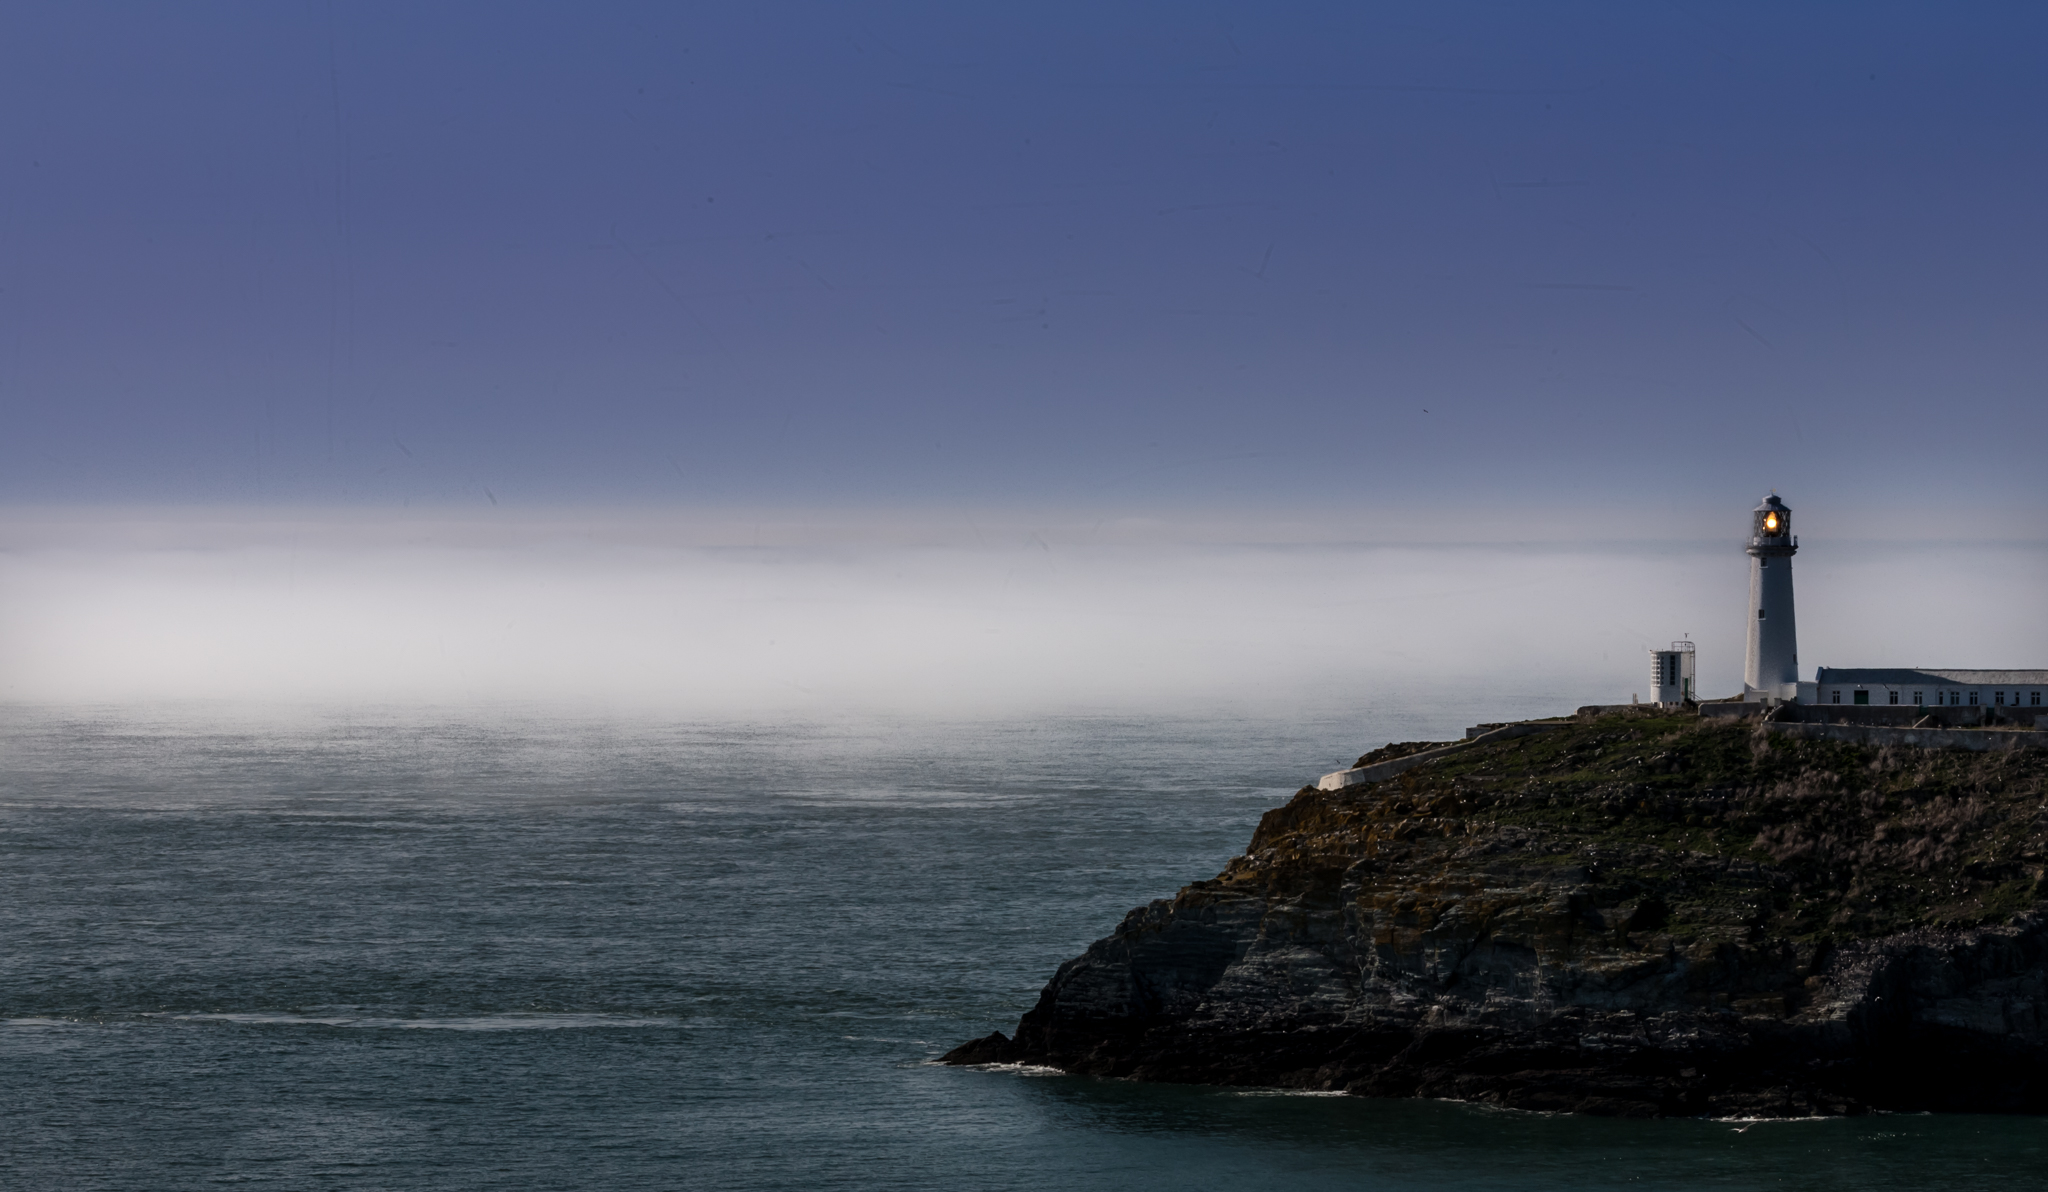 South stack lighthouse shines it's beacon as a thick wall of sea mist rolls in toward the coast, obliterating all visual aids for sailors.